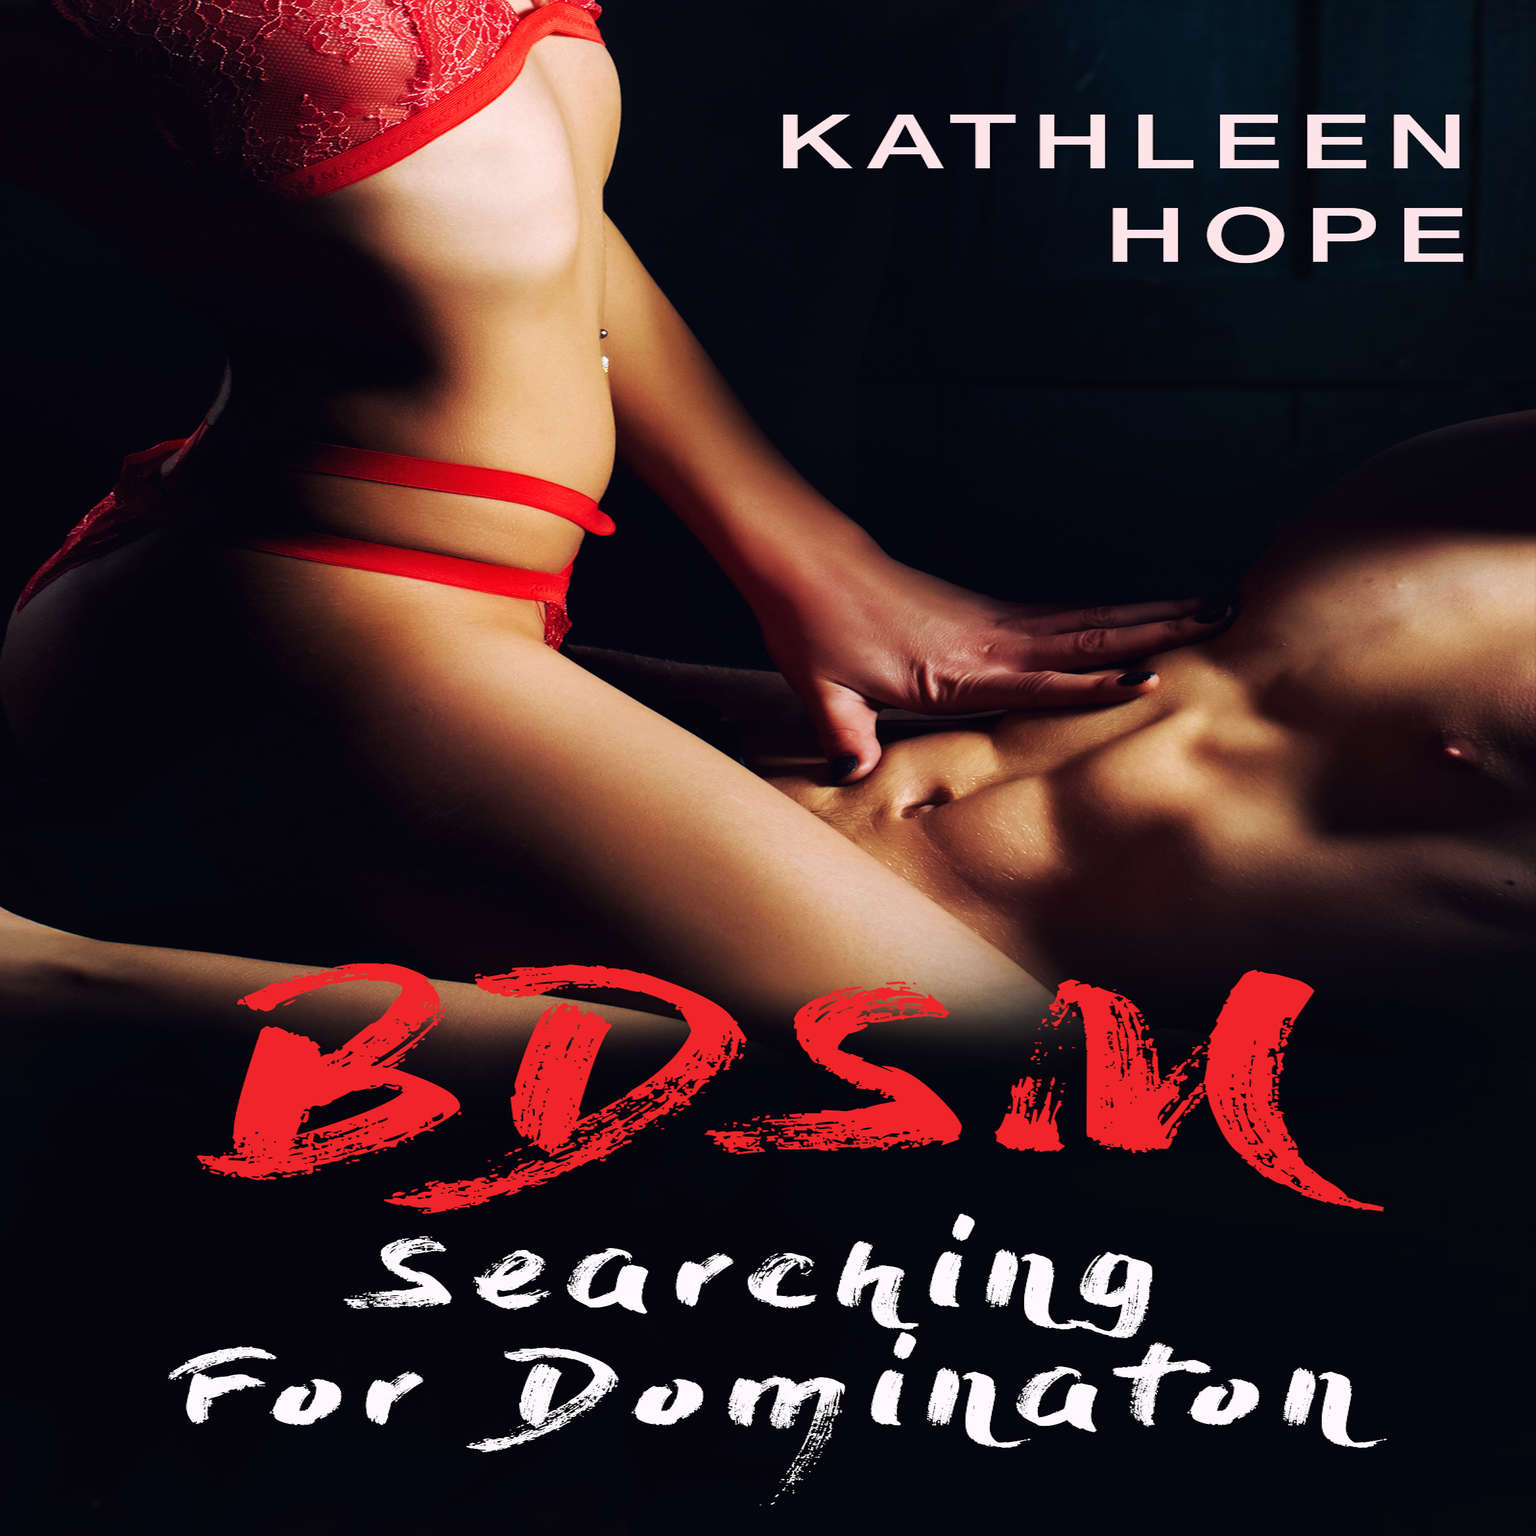 Bdsm: Searching For Domination Audiobook, by Kathleen Hope